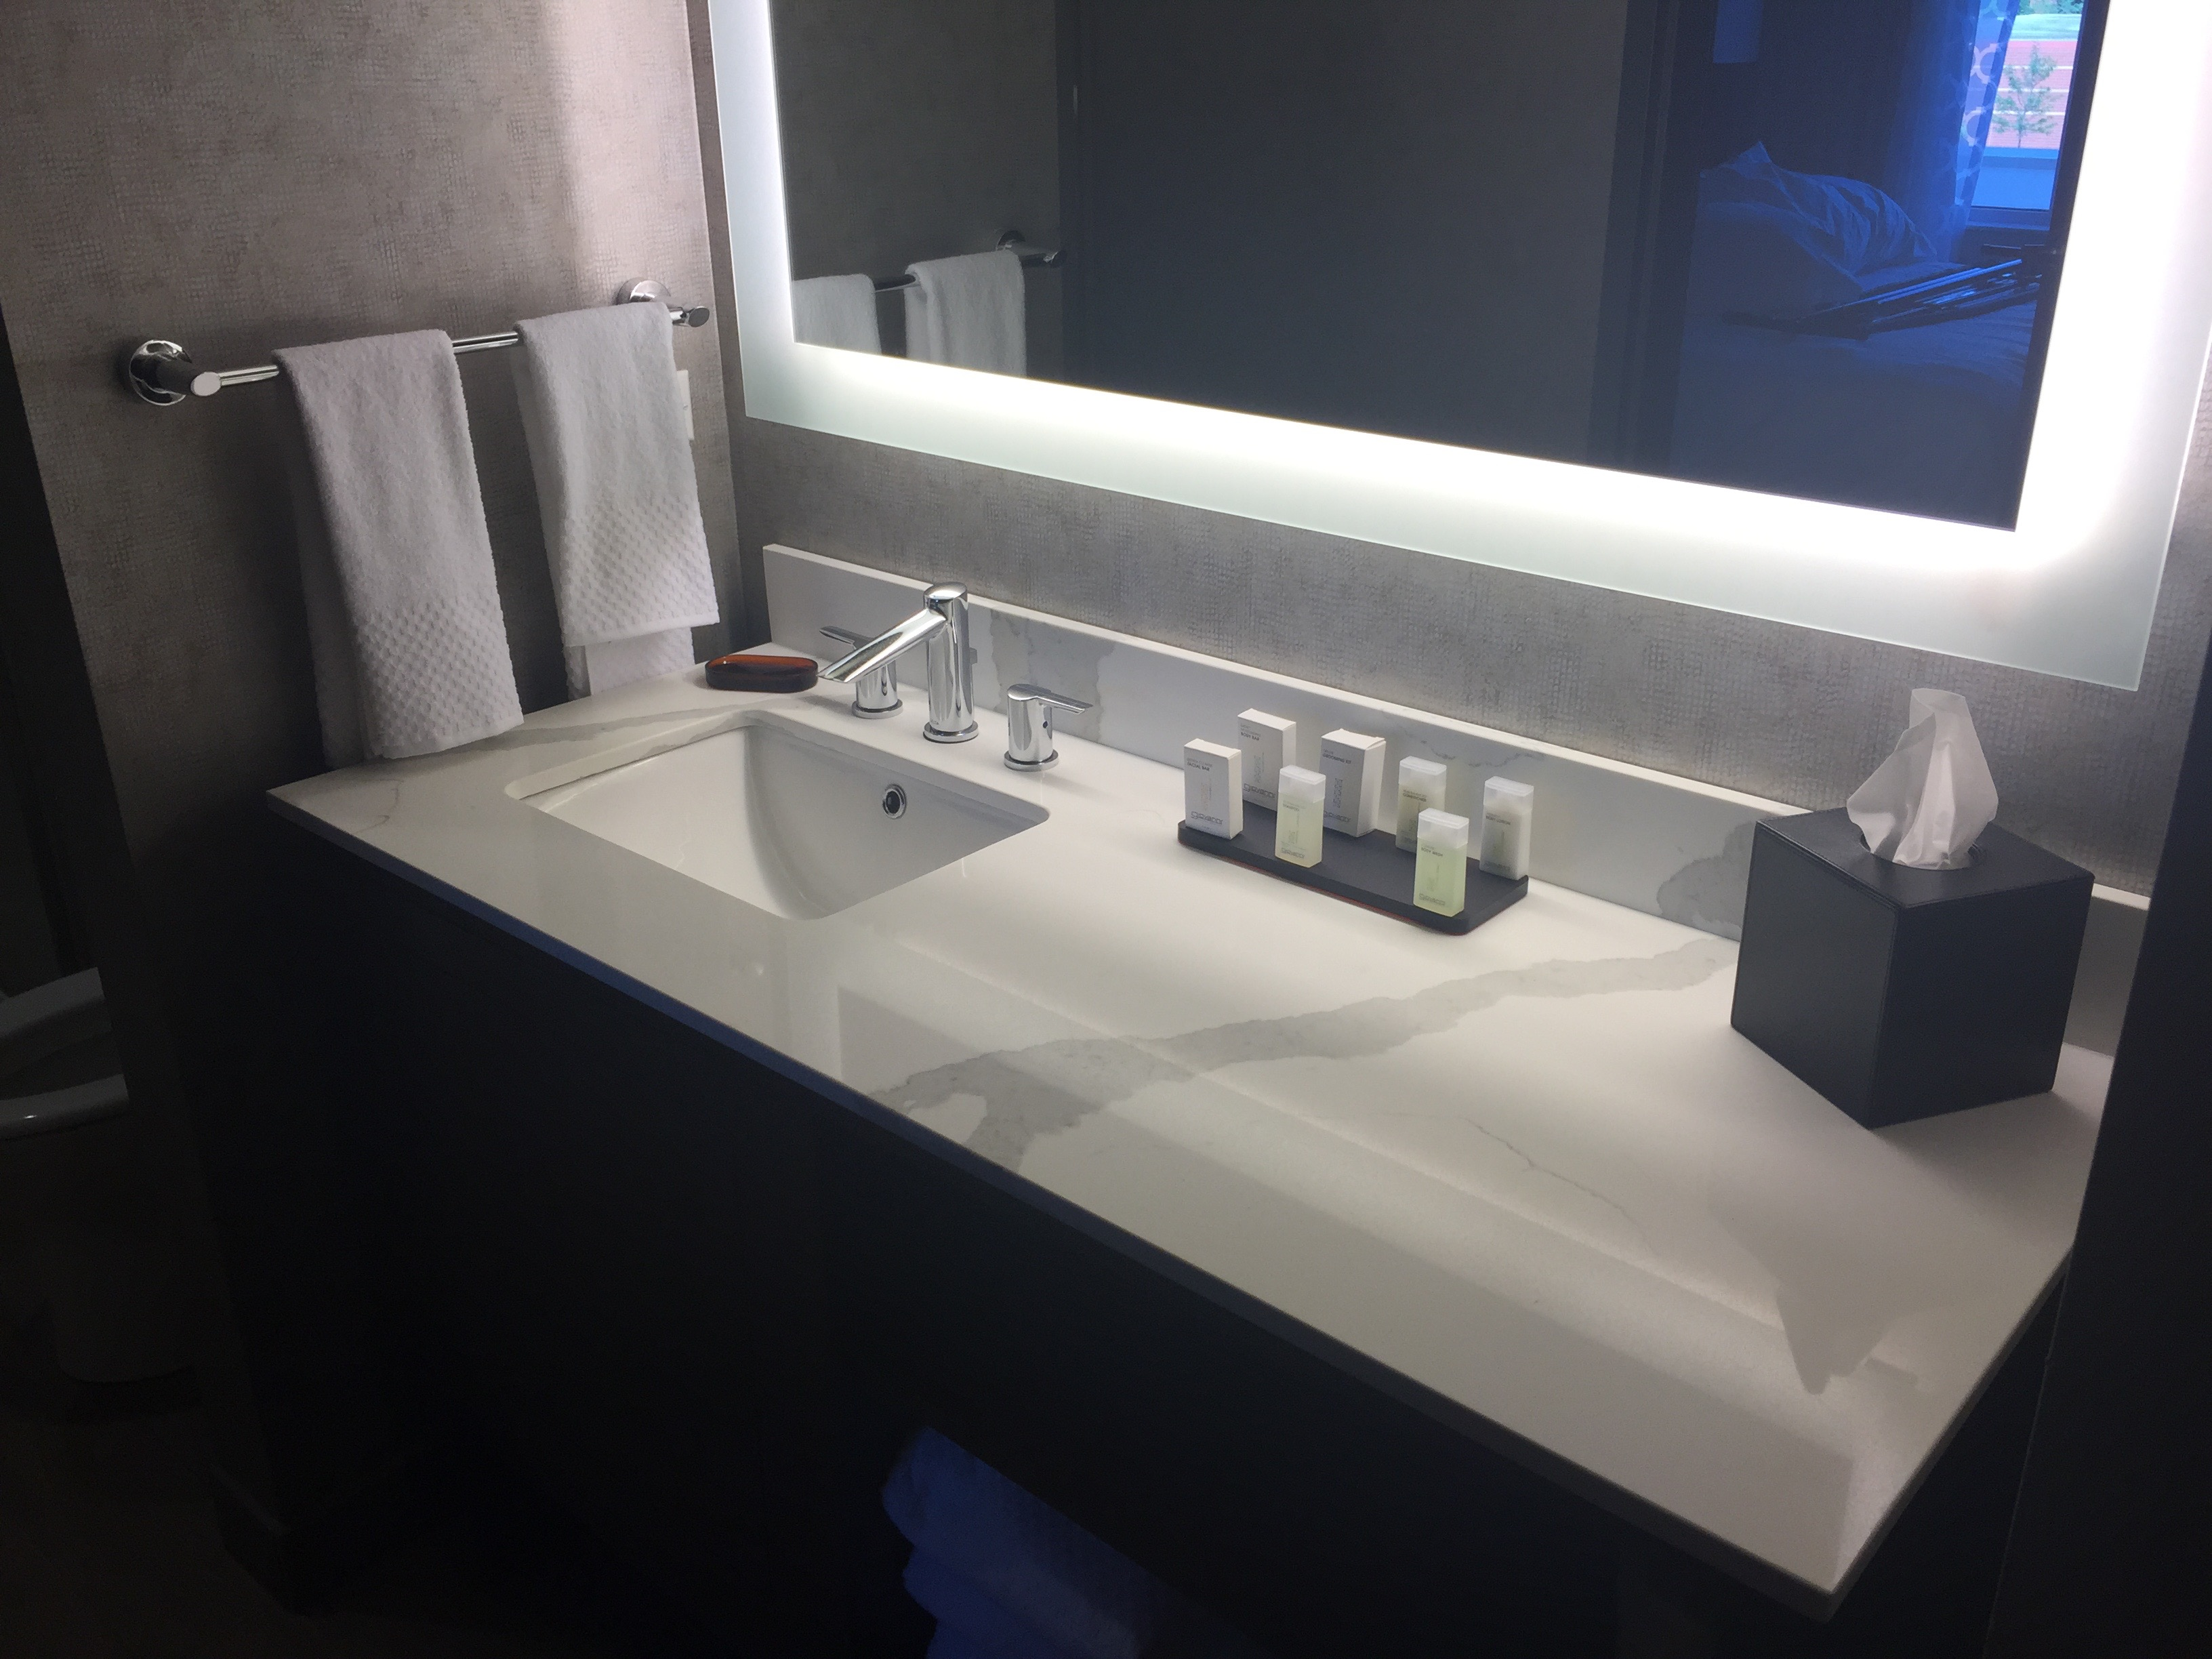 Calcutta Quartz Bathroom in Naperville, IL - StoneTek Design